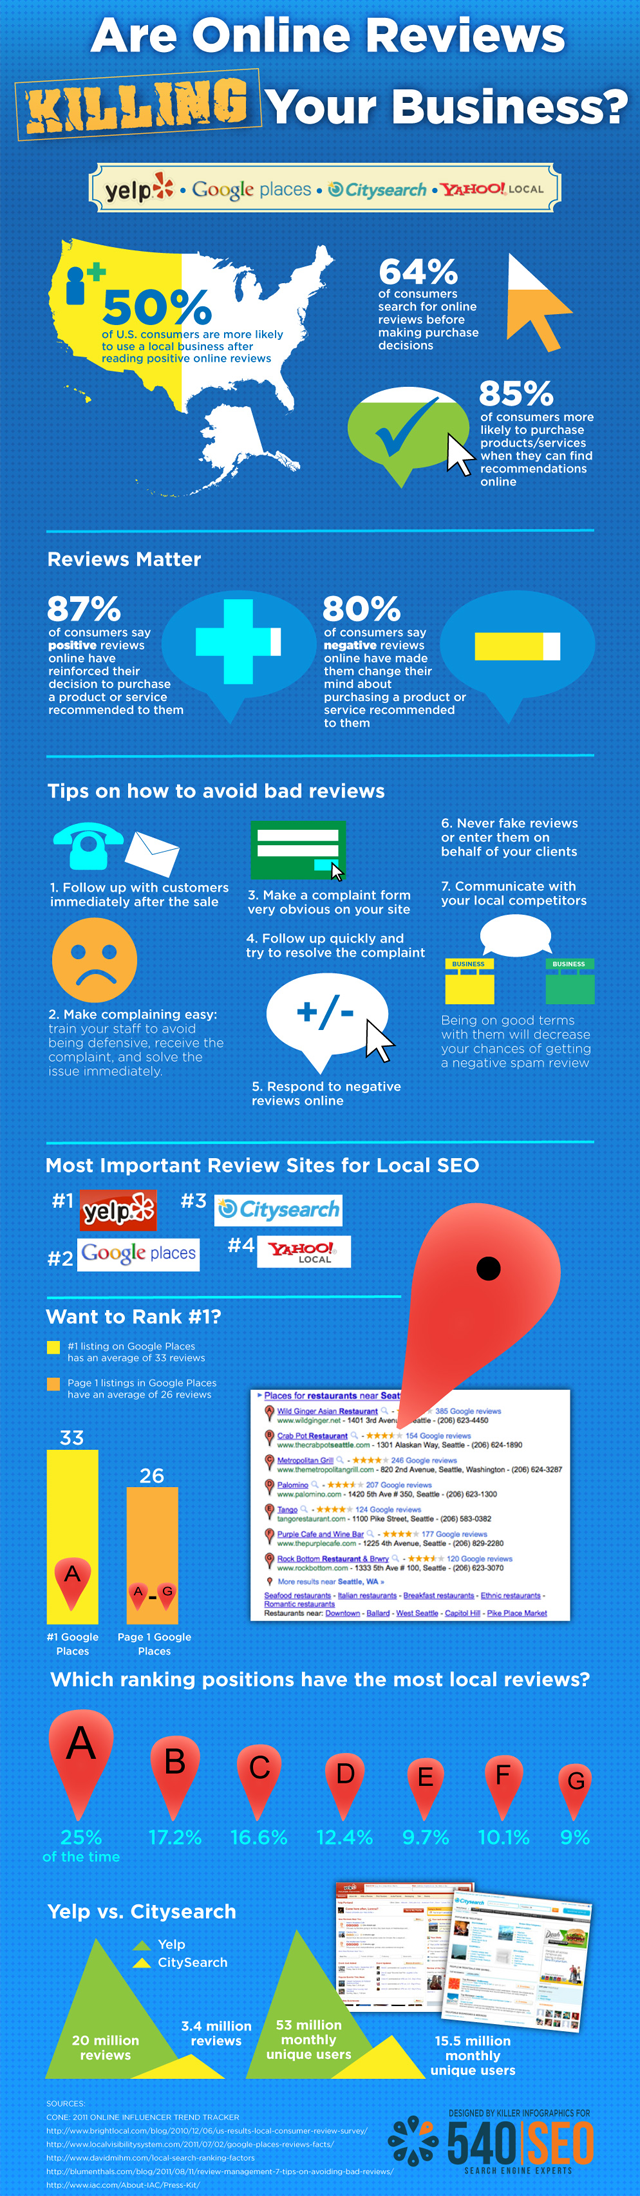 Are_online_reviews_killing_your_business